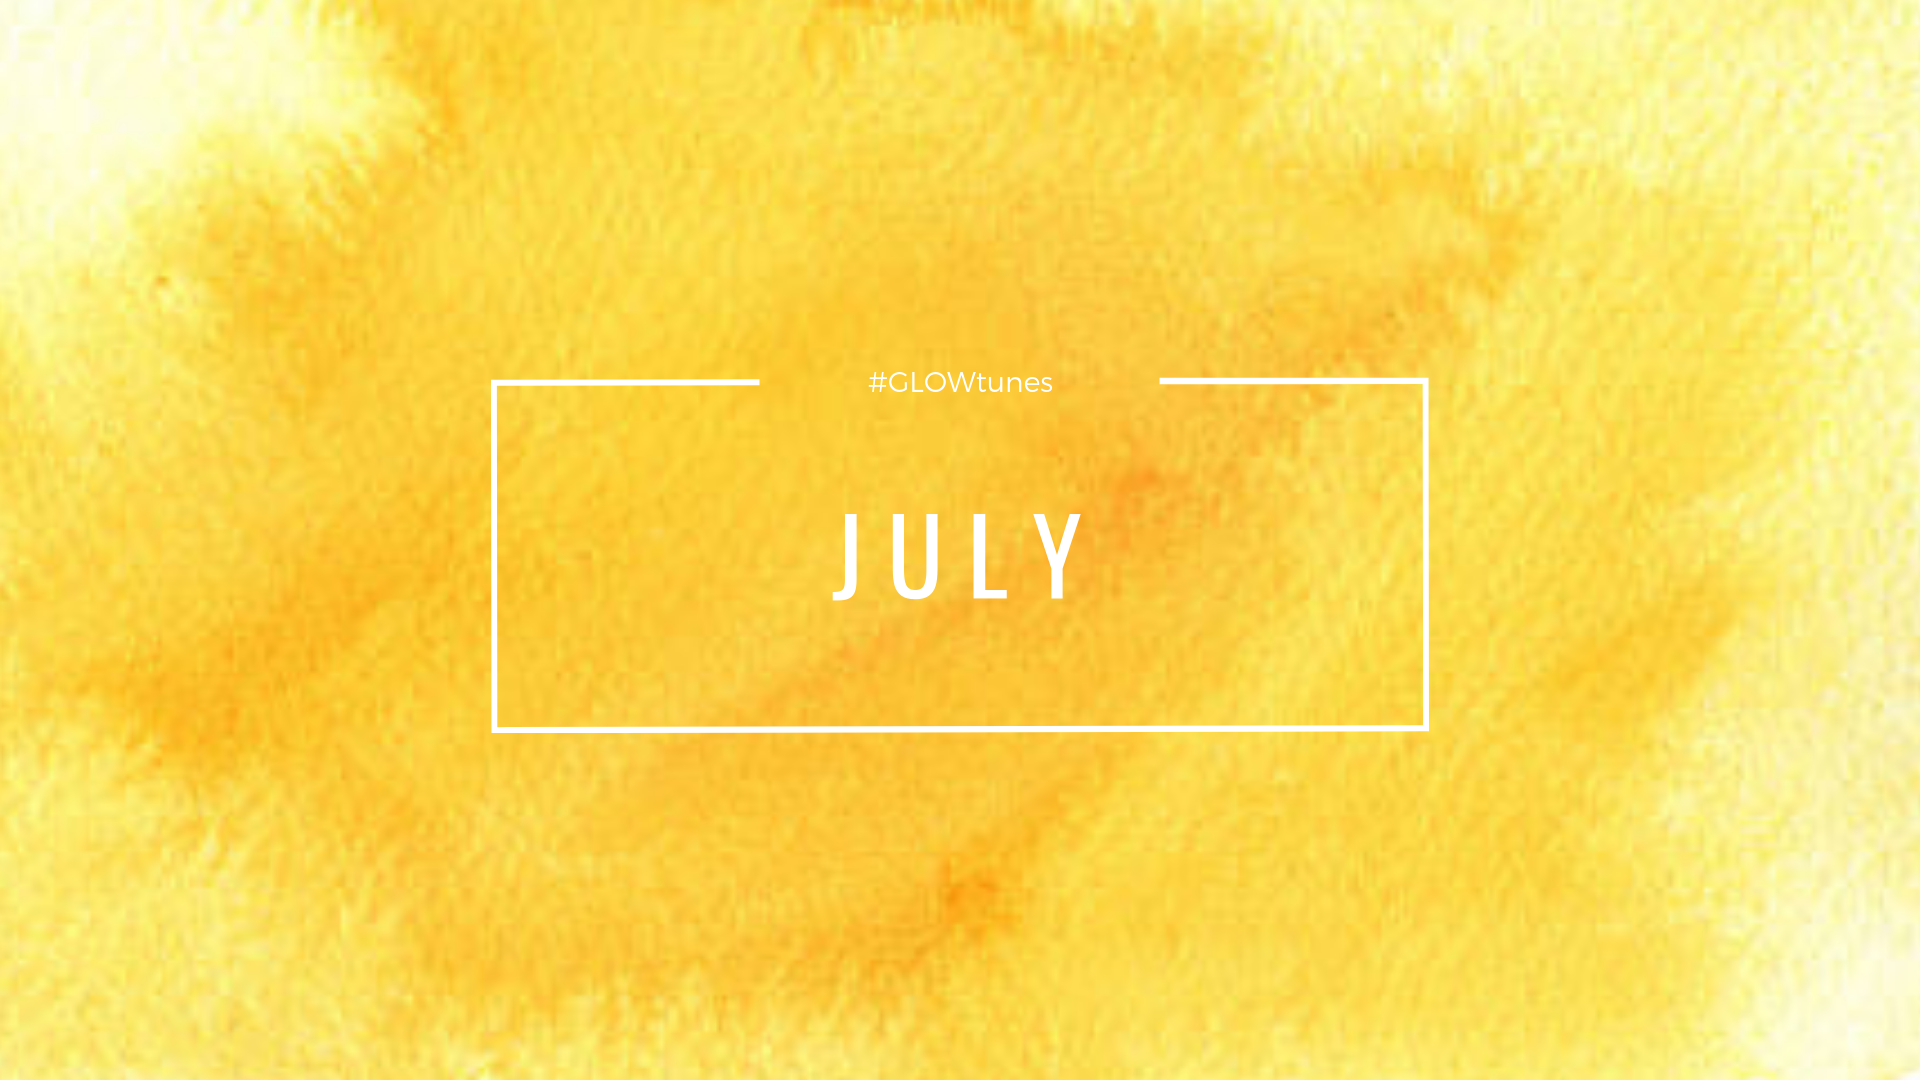 Here is the July 2019 #GLOWtunes playlist, for your listening pleasure. Straight from your glow girls. As music-obsessed chicks, we're excited to share with you a mix of tunes that we love. Some rap, chill, hip hop, electronic, and just good beats.  ENJOY xx  LISTEN HERE ::  https://open.spotify.com/user/howyouglow/playlist/7gsUmaA6osbhof2iAGtEuN?si=OLBi5T7pQc6aVX6hzYdMJg